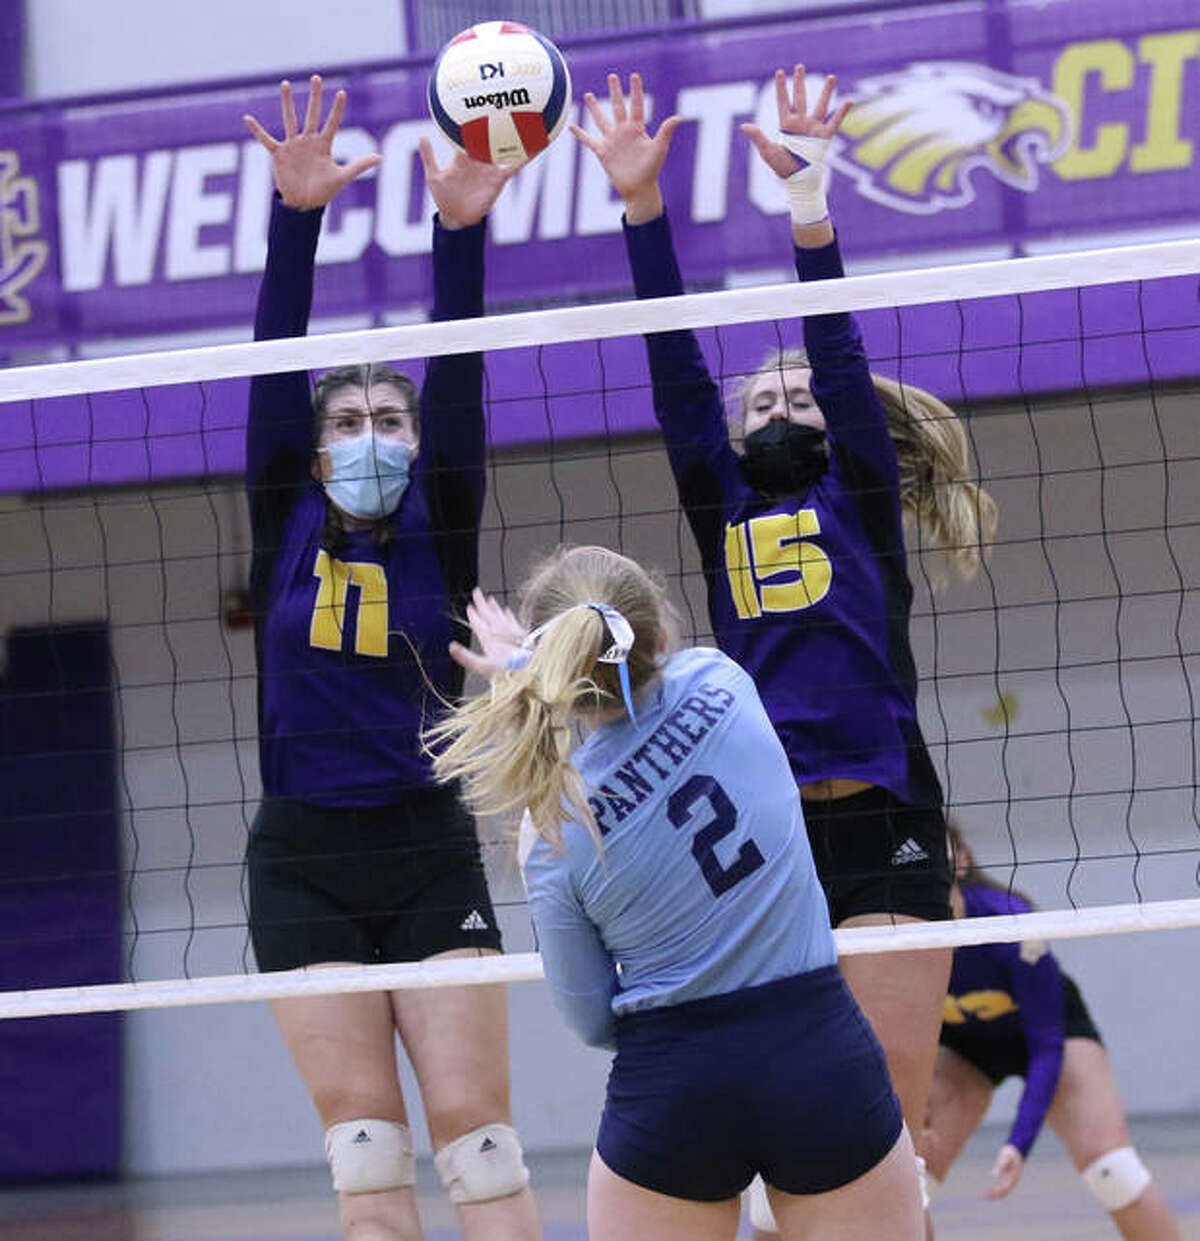 Jersey's Sally Hudson (2) deflects a shot off the top of a block put up by CM's Jackie Woelfel (11) and Annabelle Reno (15) on Thursday night in Bethalto.